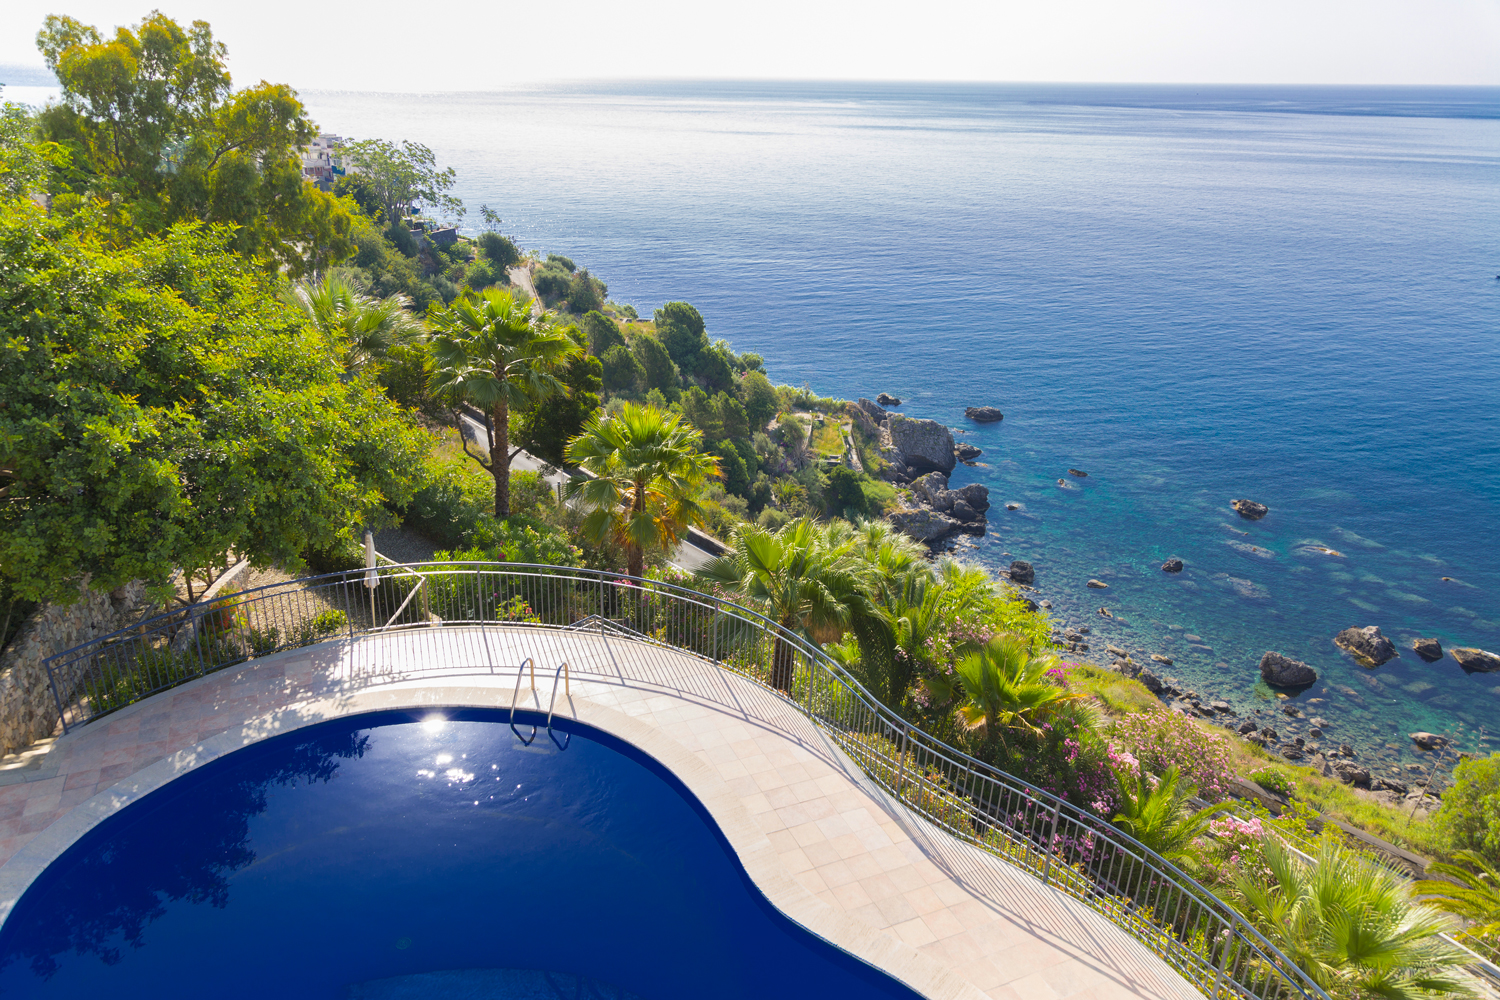 pool-landscape-crystal-sea-four-star-hotel-taormina-sicily